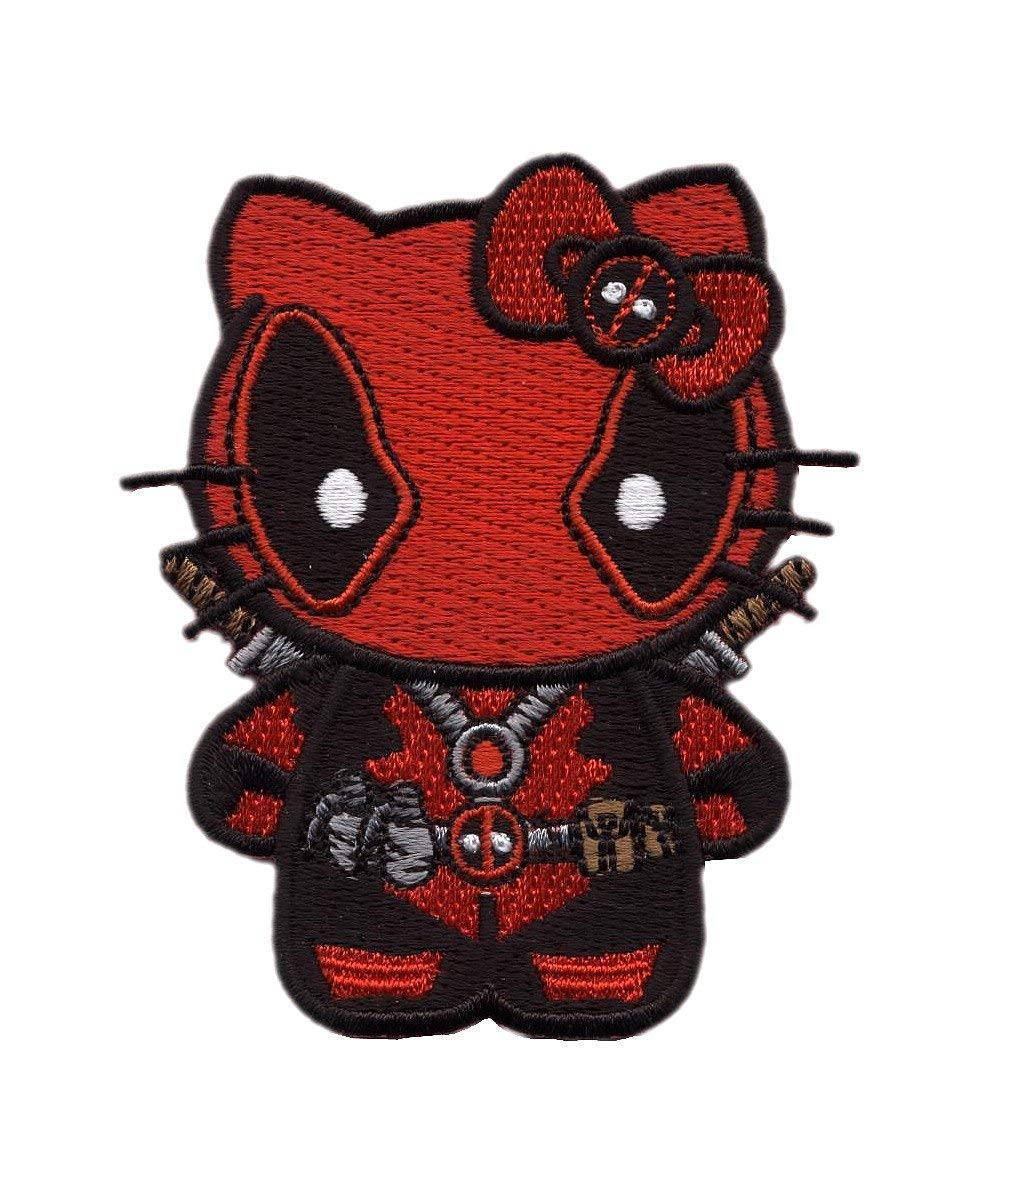 Hook Fastener Hello Deadpool Kitty Morale Gear Tactical Patch Cap Backpack Applique Patch by Titan One Europe